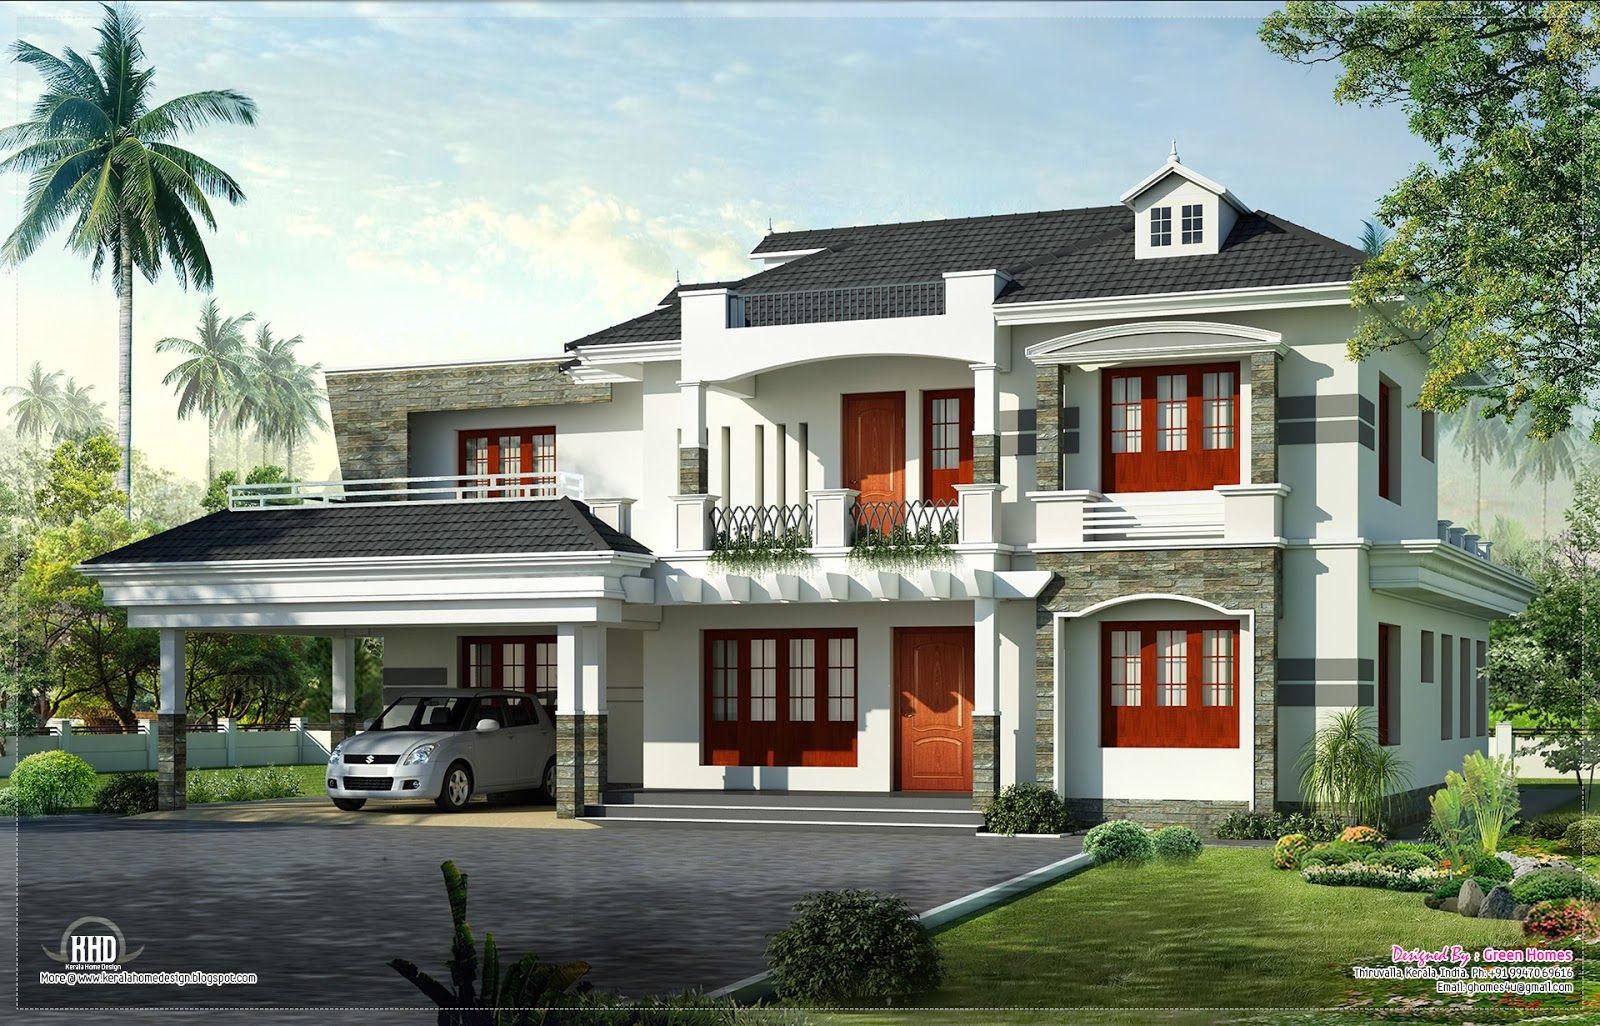 amazing designs for new homes new kerala home - New Homes Designs